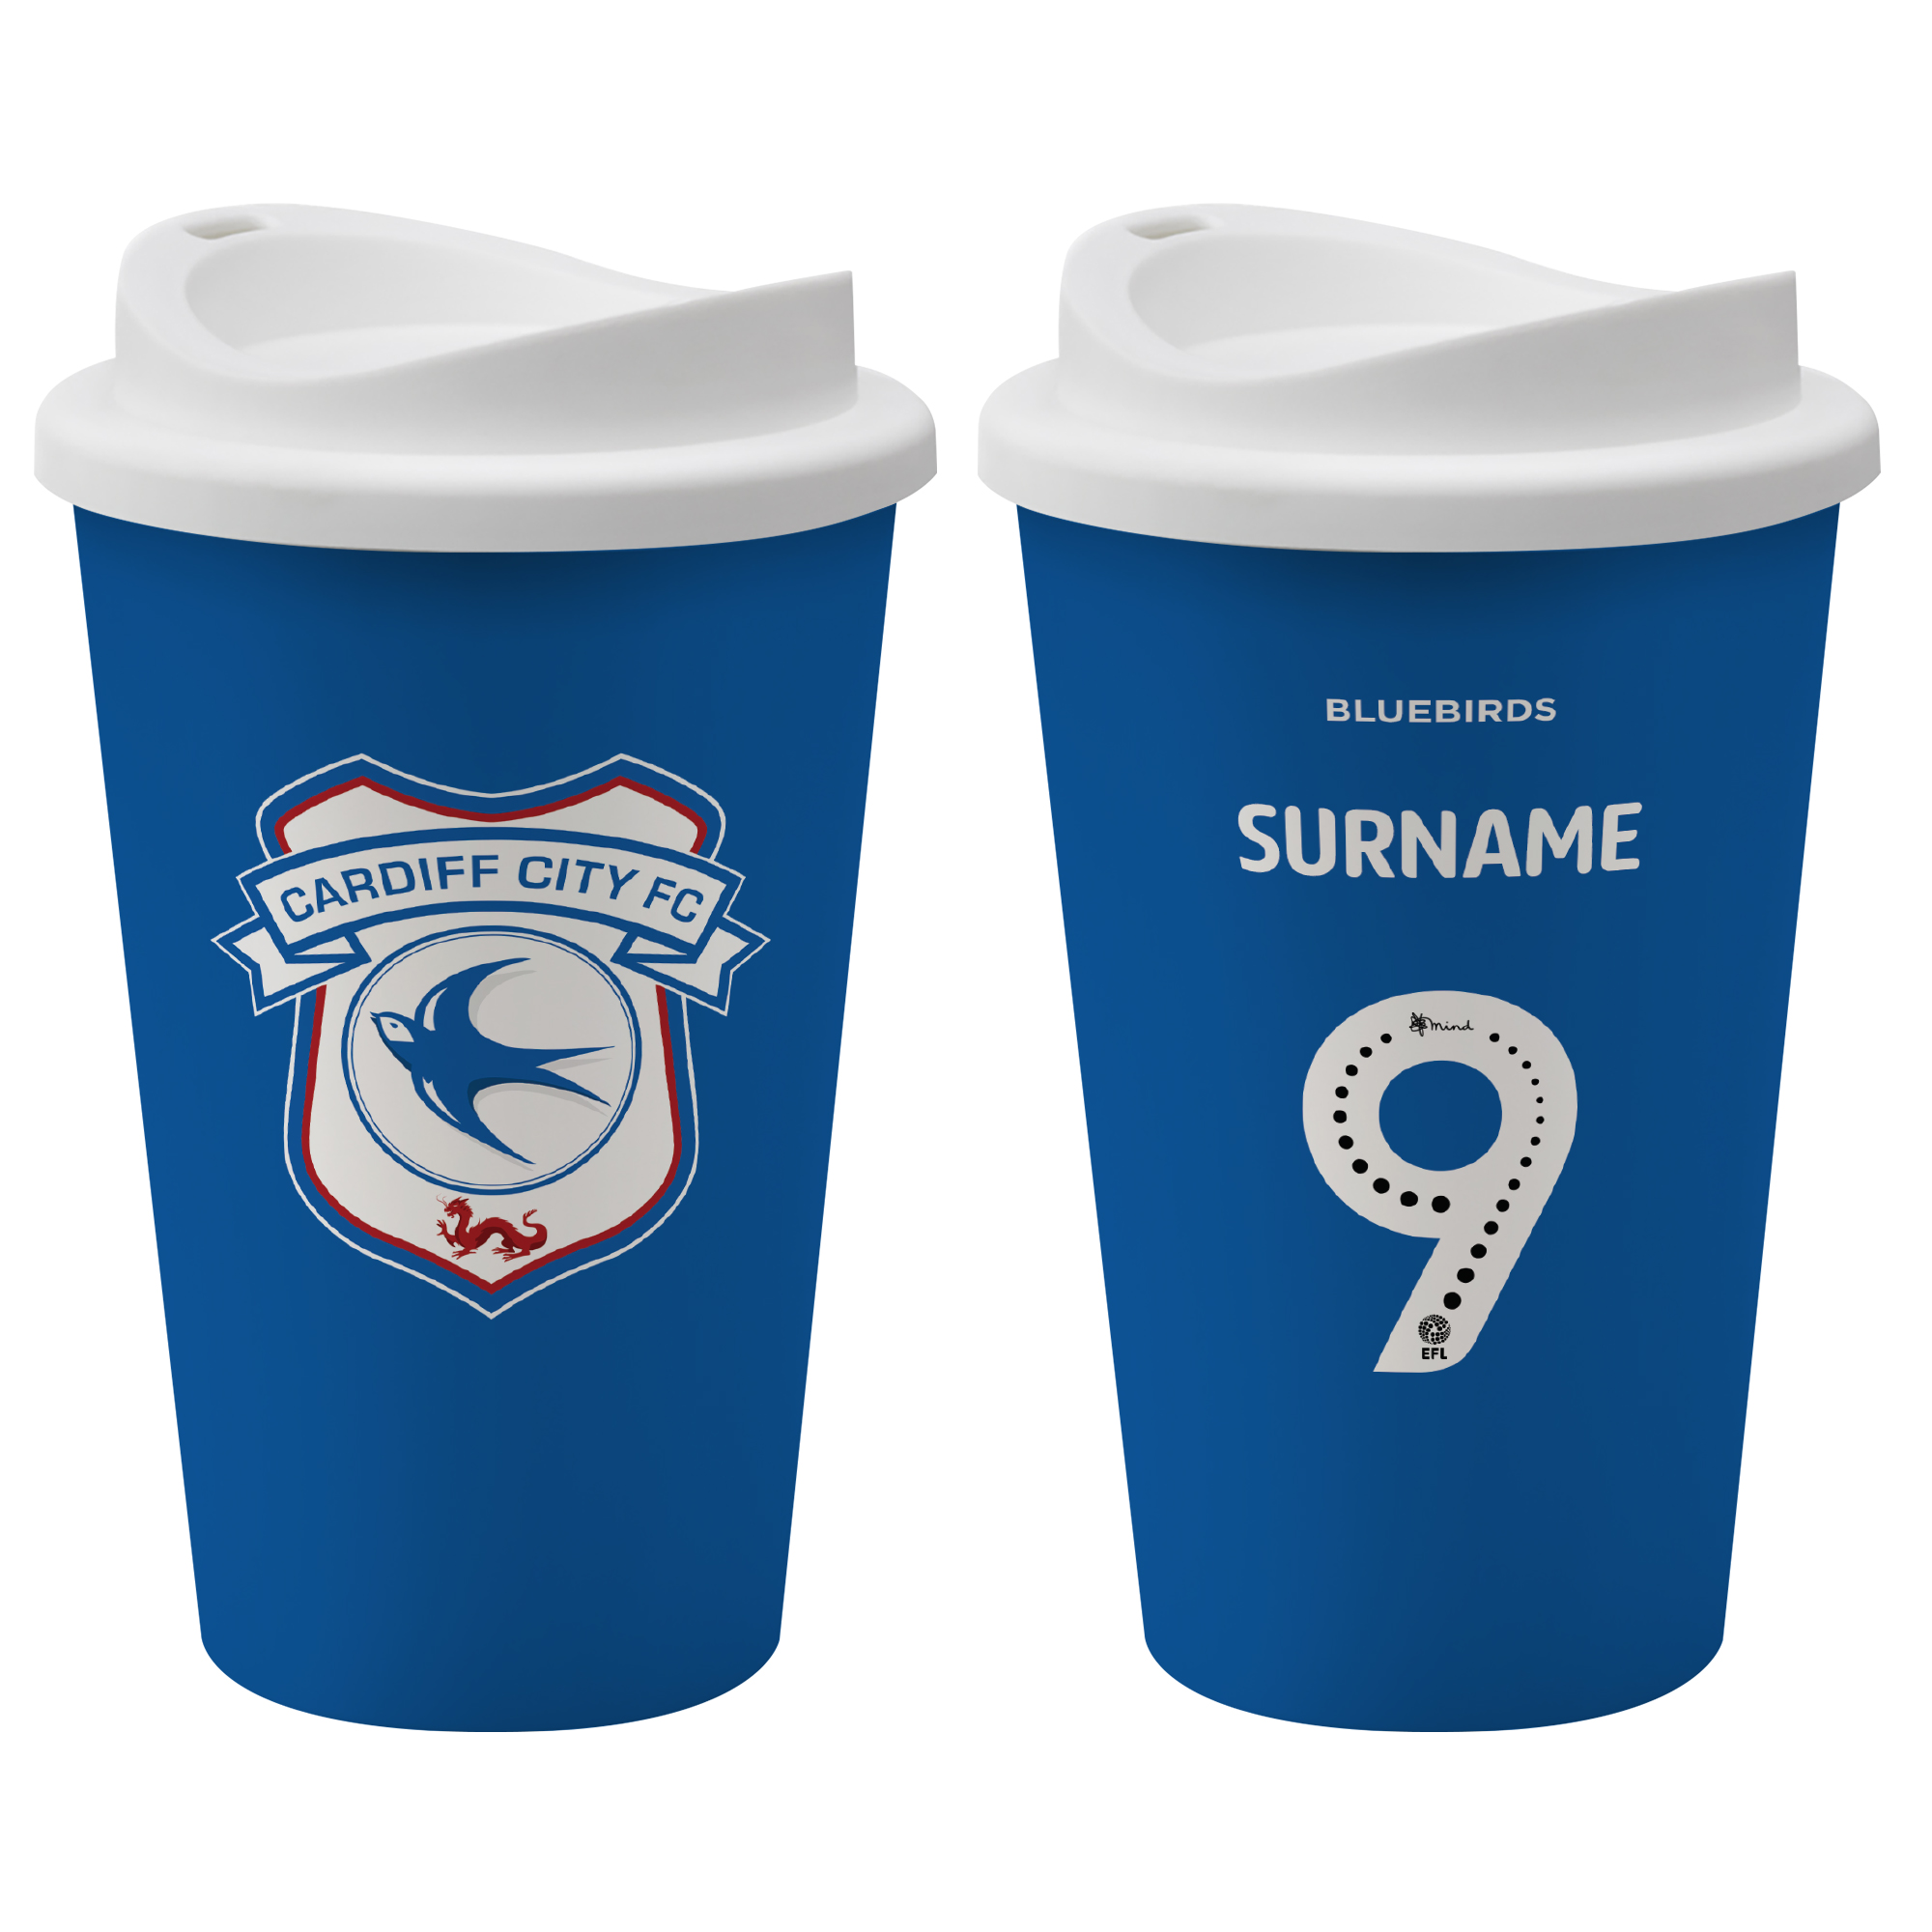 Cardiff City FC Back of Shirt Reusable Cup